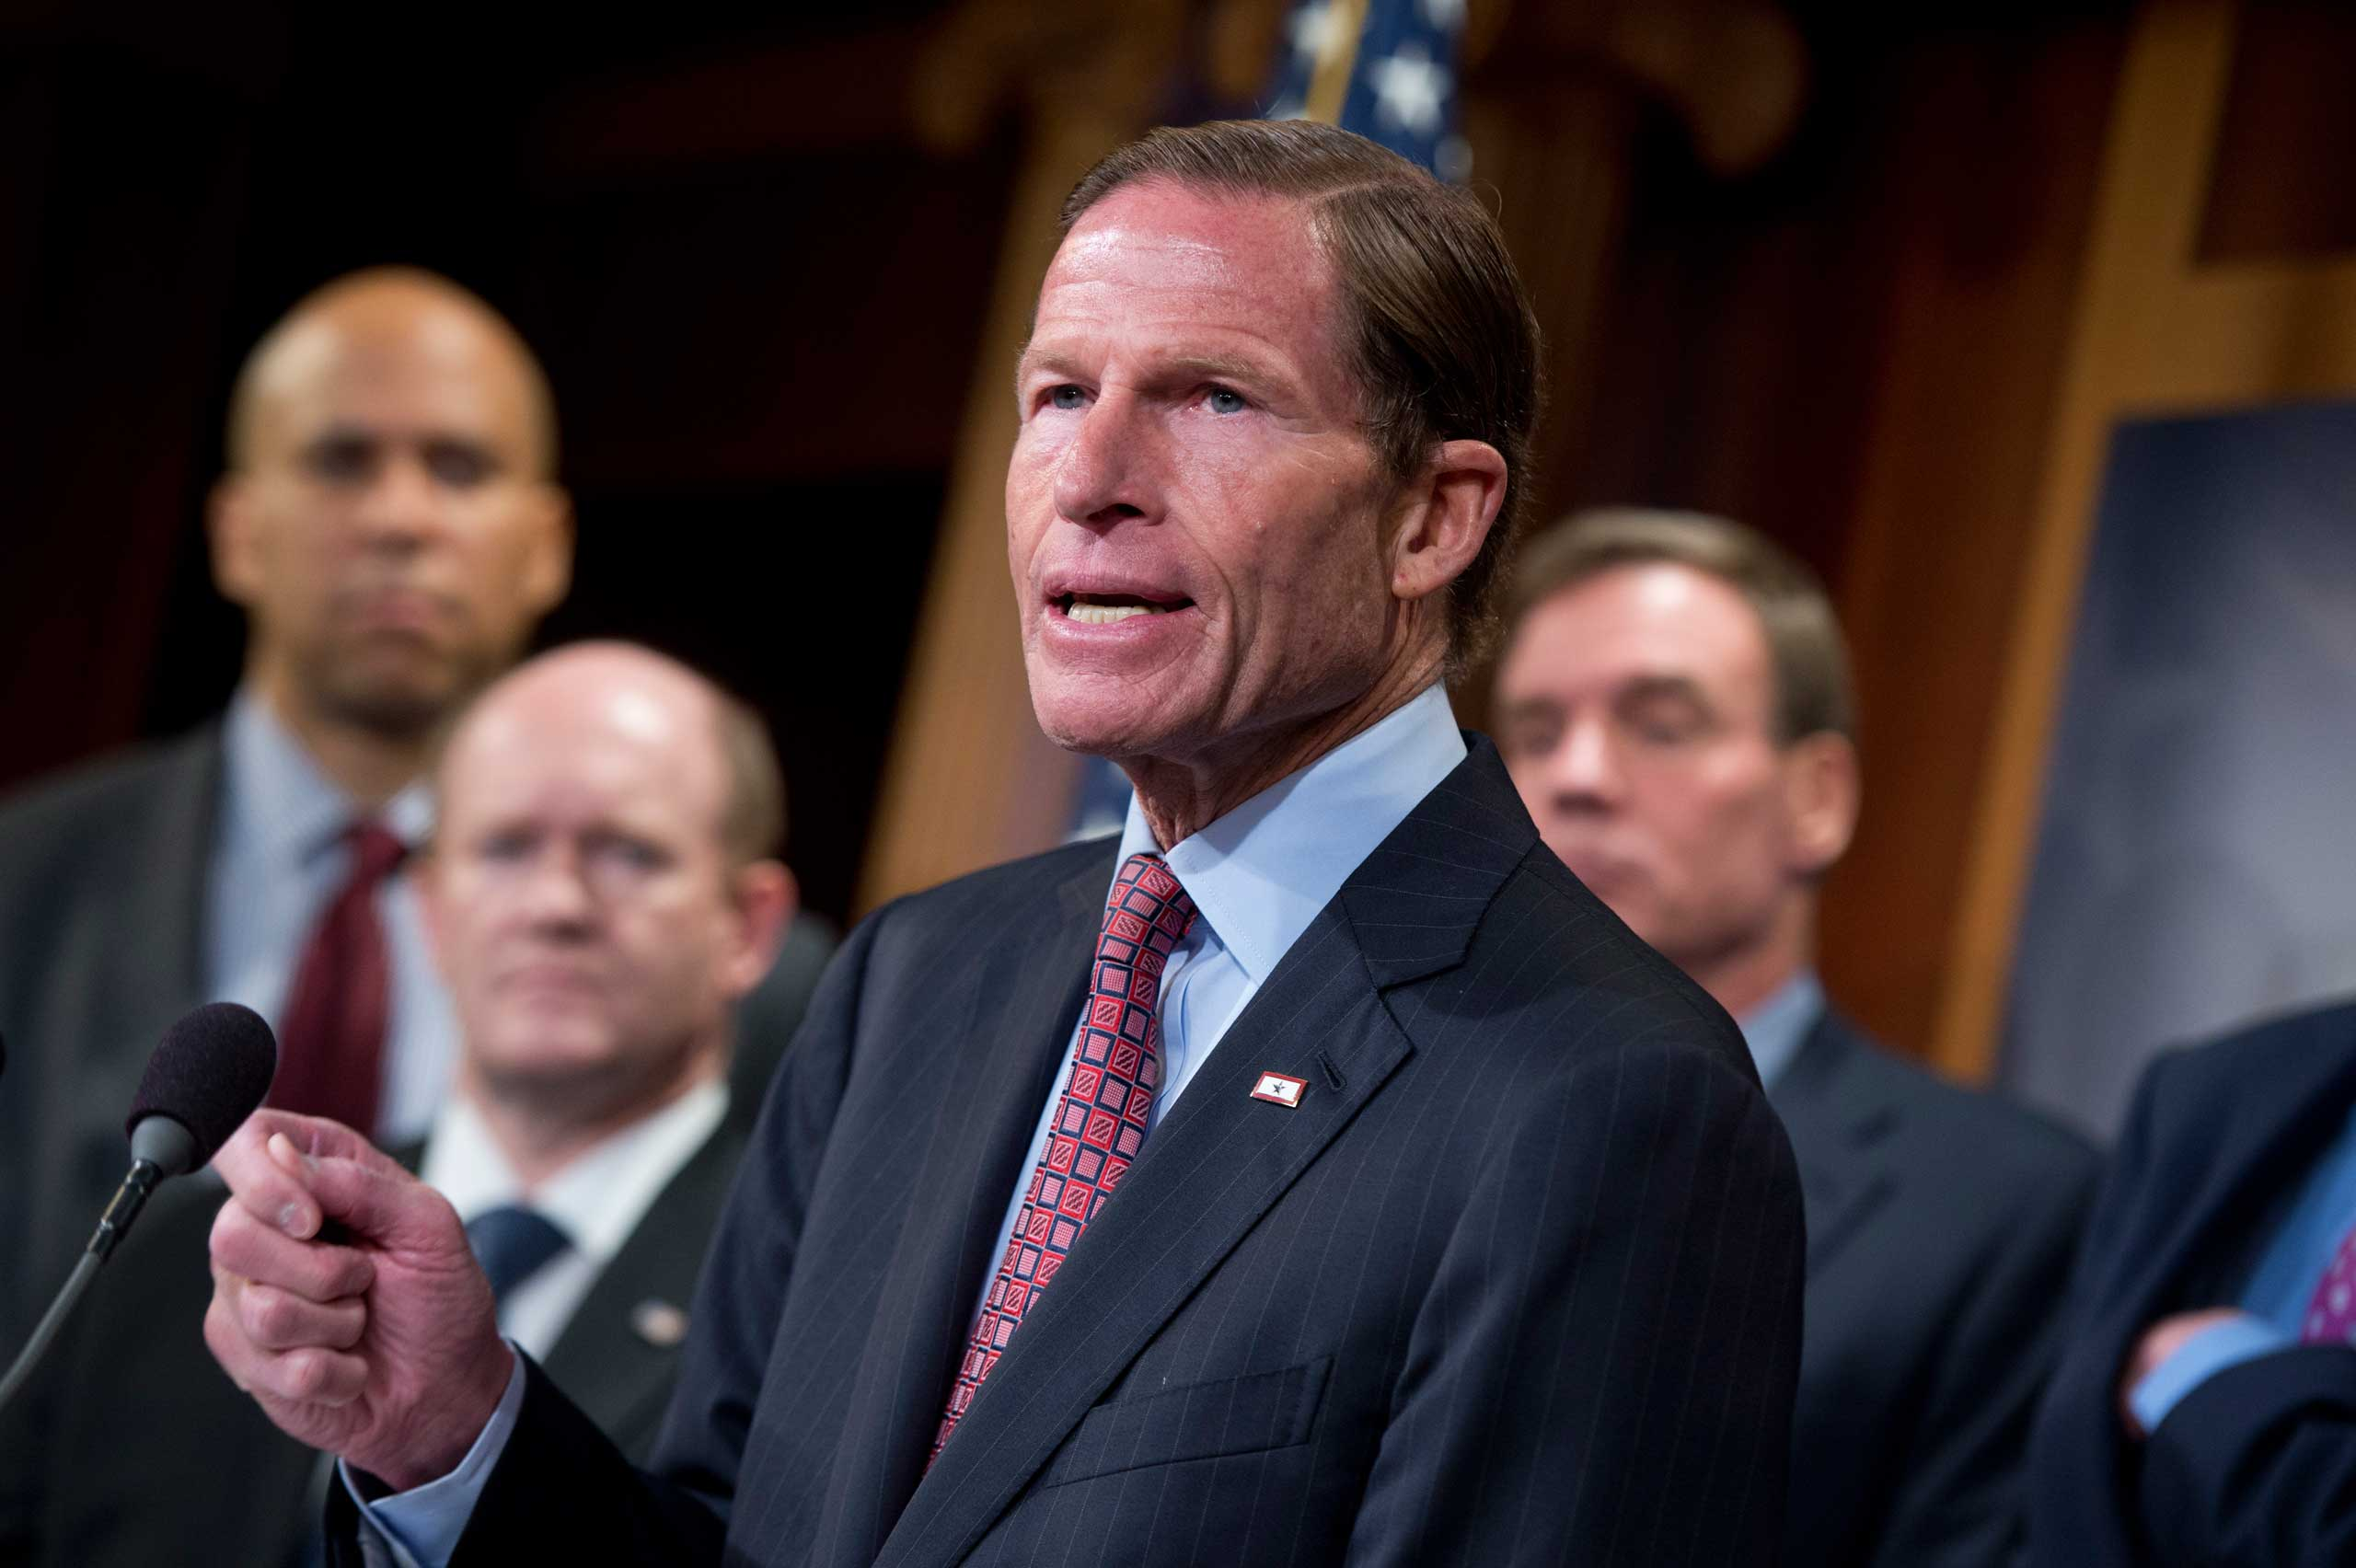 Sen. Richard Blumenthal, D-Conn., speaks during a news conference in the Capitol's Senate studio to introduce the Iran Policy Oversight Act of 2015, Oct. 1, 2015.